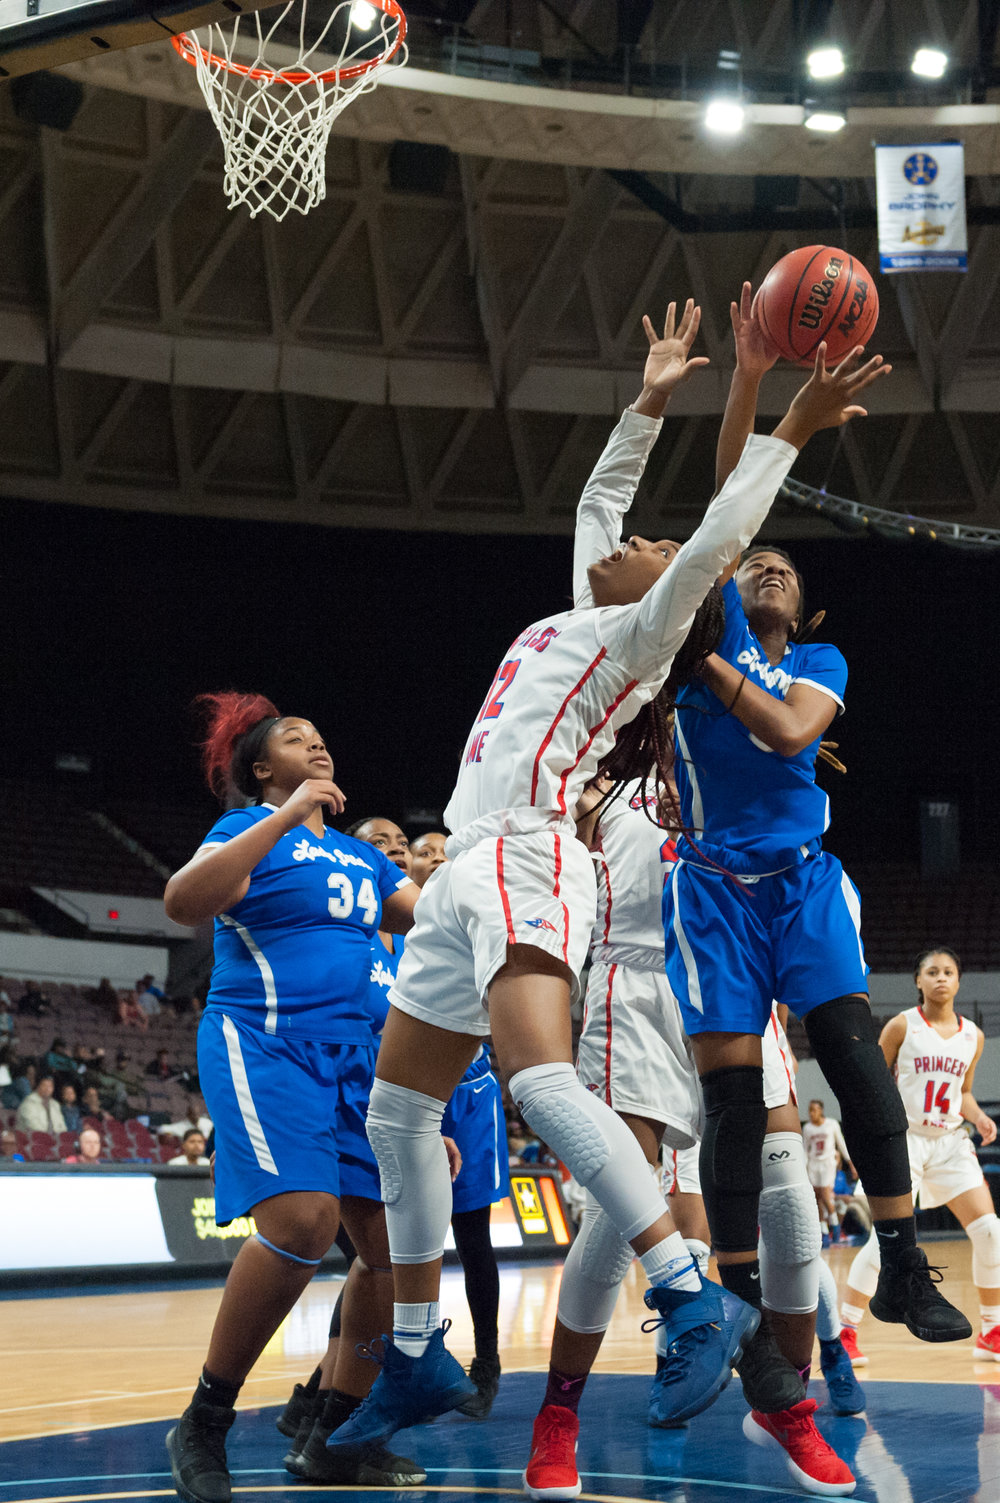 Princess Anne's Mahogany Lester takes a shot against Norview's Iya Holley-Reid during the Region 5A Championship game held Monday, February 26, 2018 at the Norfolk Scope. Princess Anne defeated Norview 61 to 40.